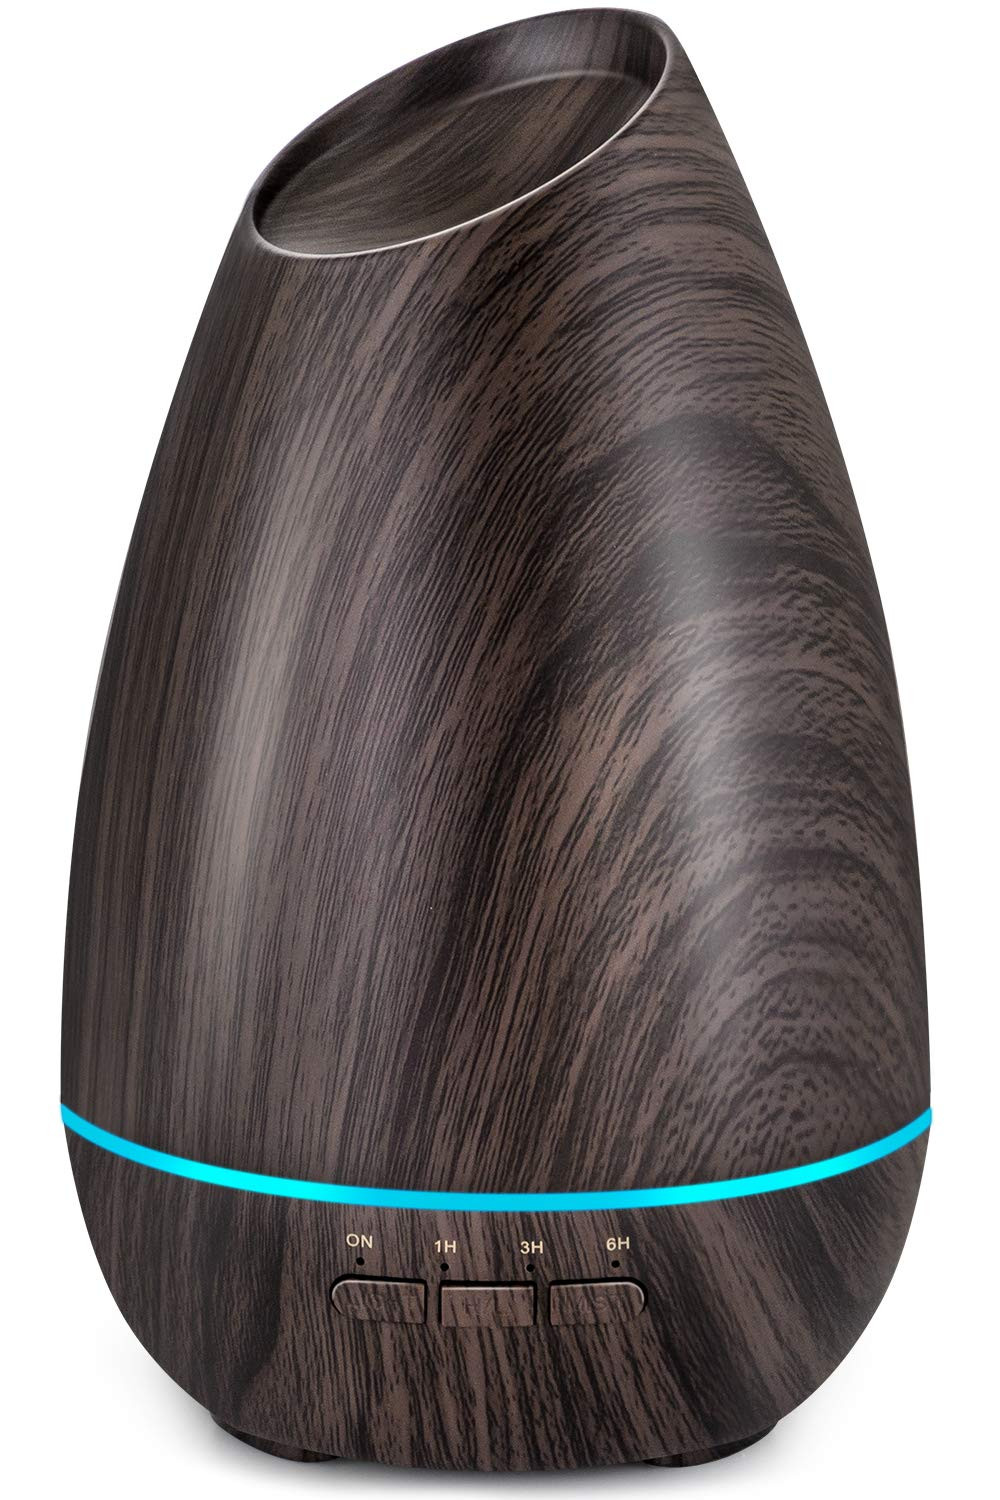 Product Review: InnoGear Essential Oil Diffuser Ash Said It